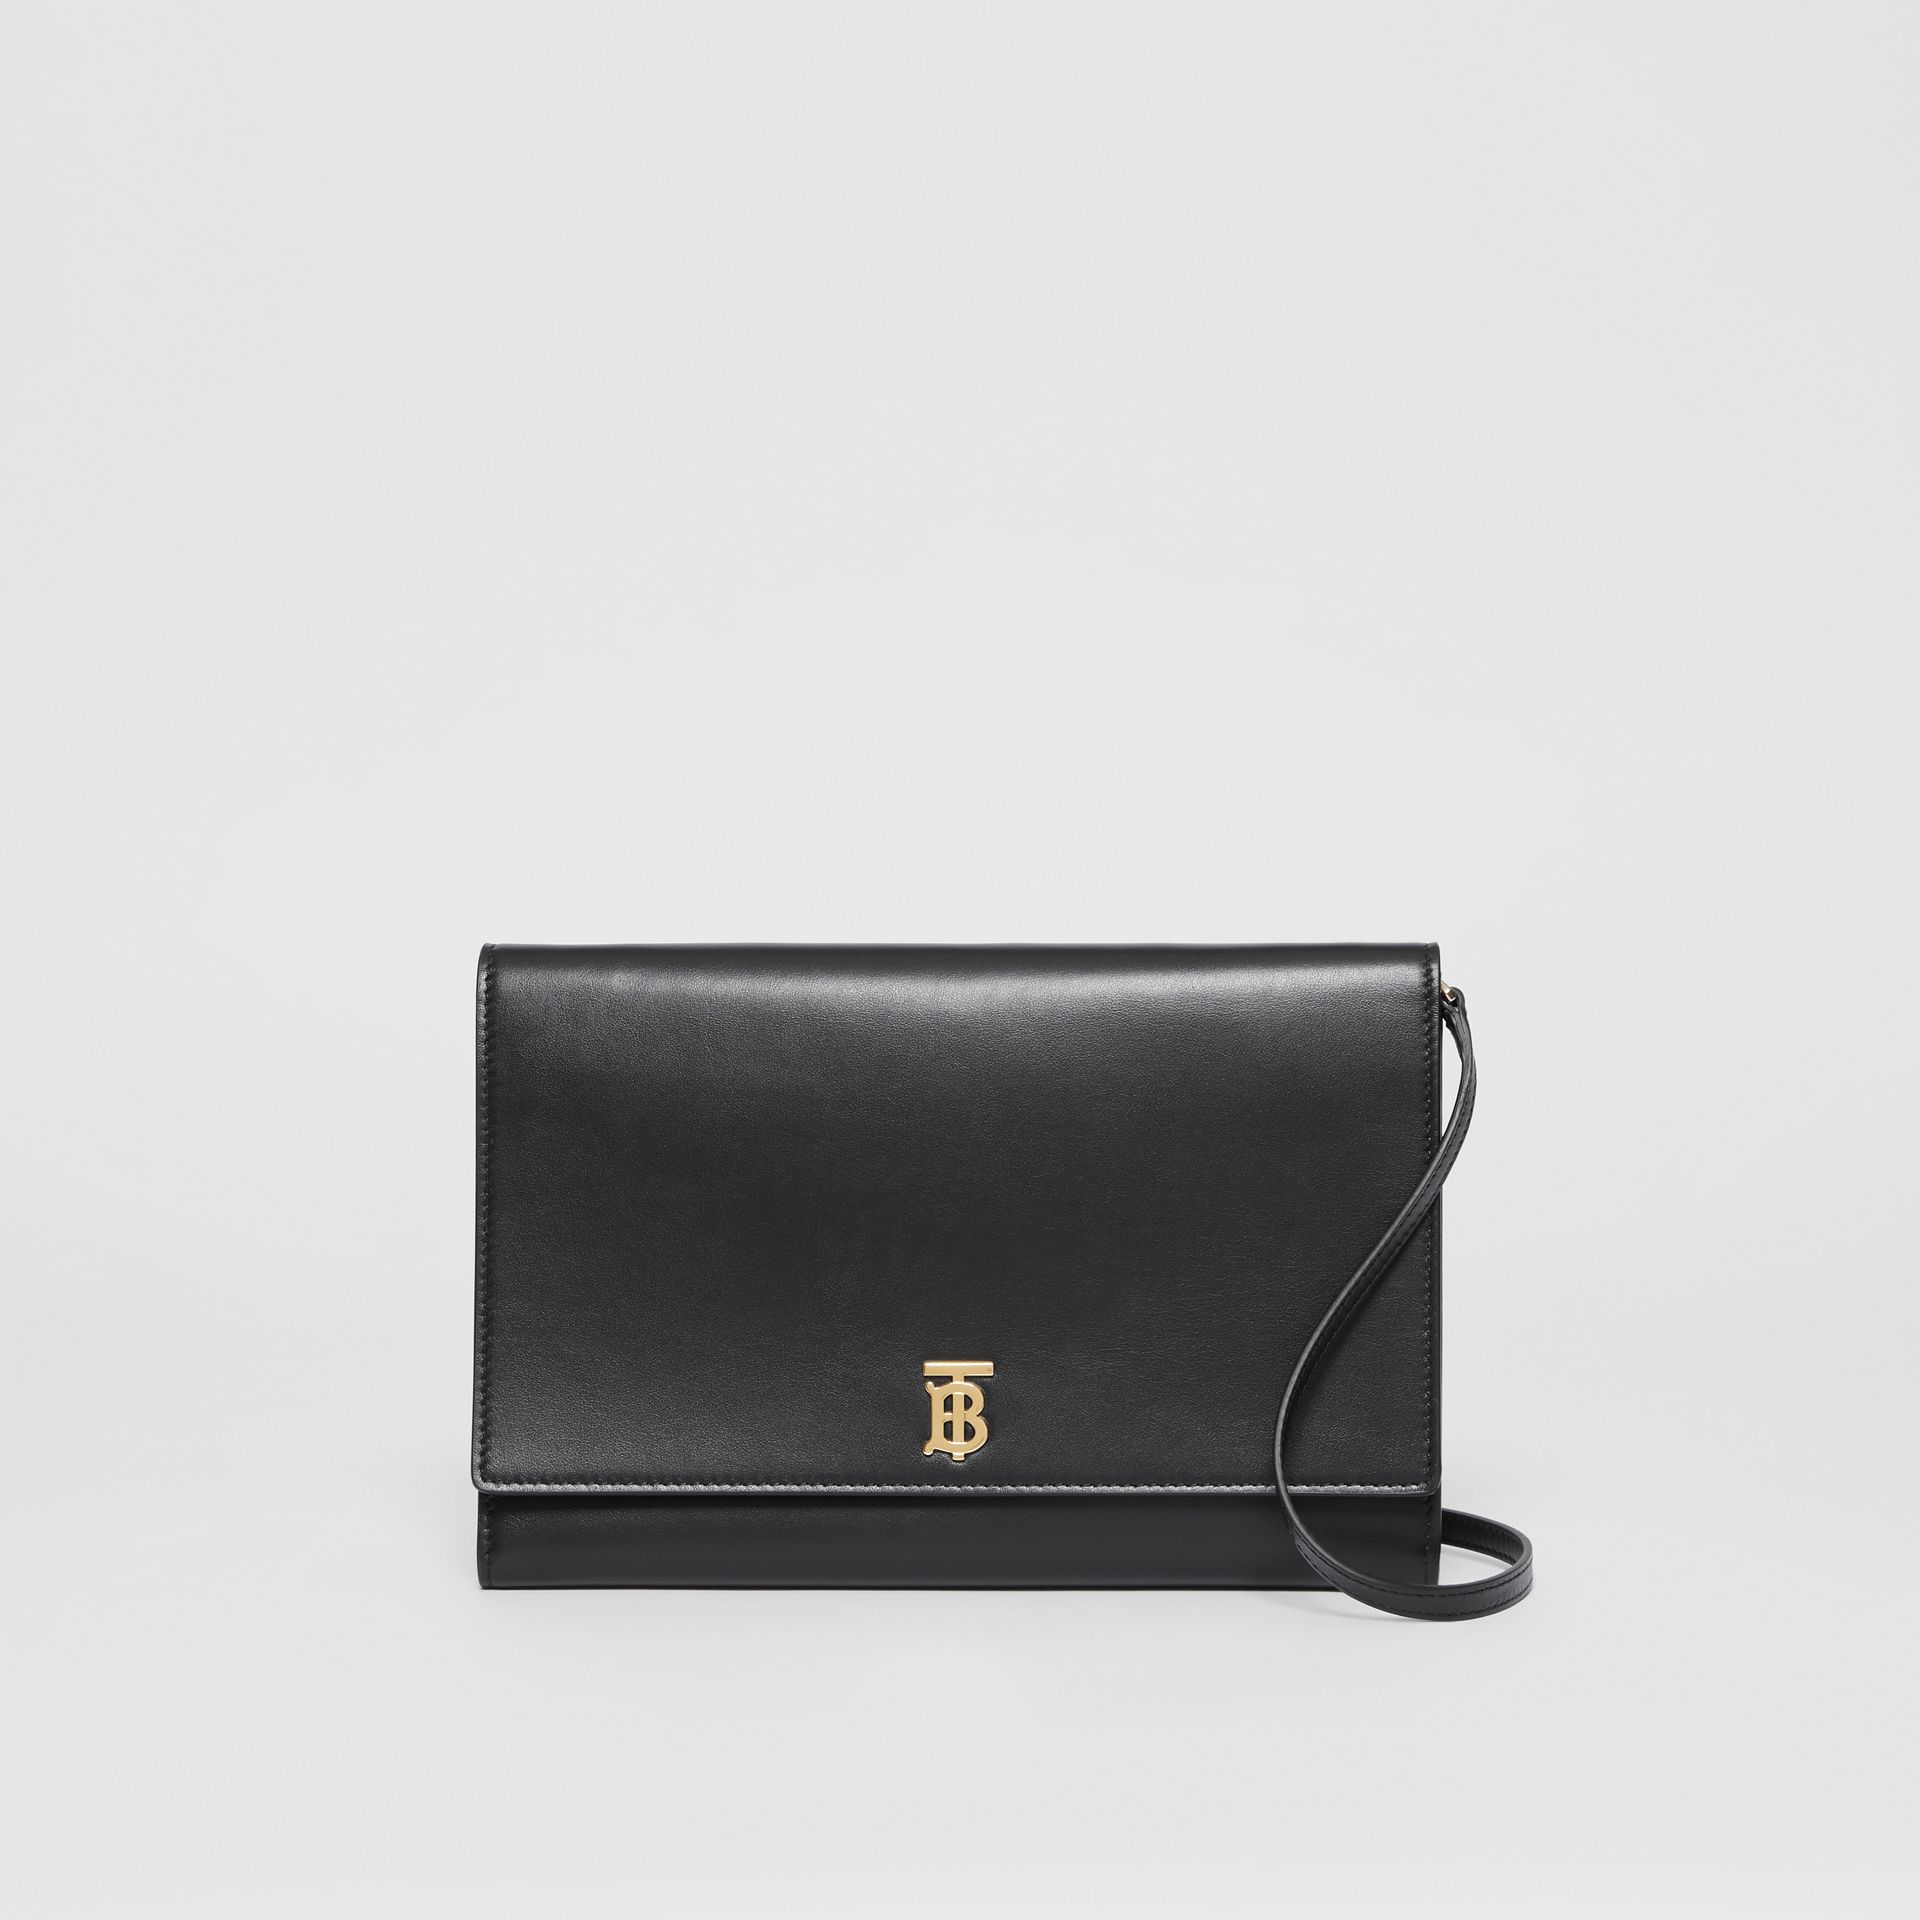 Monogram Motif Leather Bag with Detachable Strap in Black - Women | Burberry Canada - gallery image 0